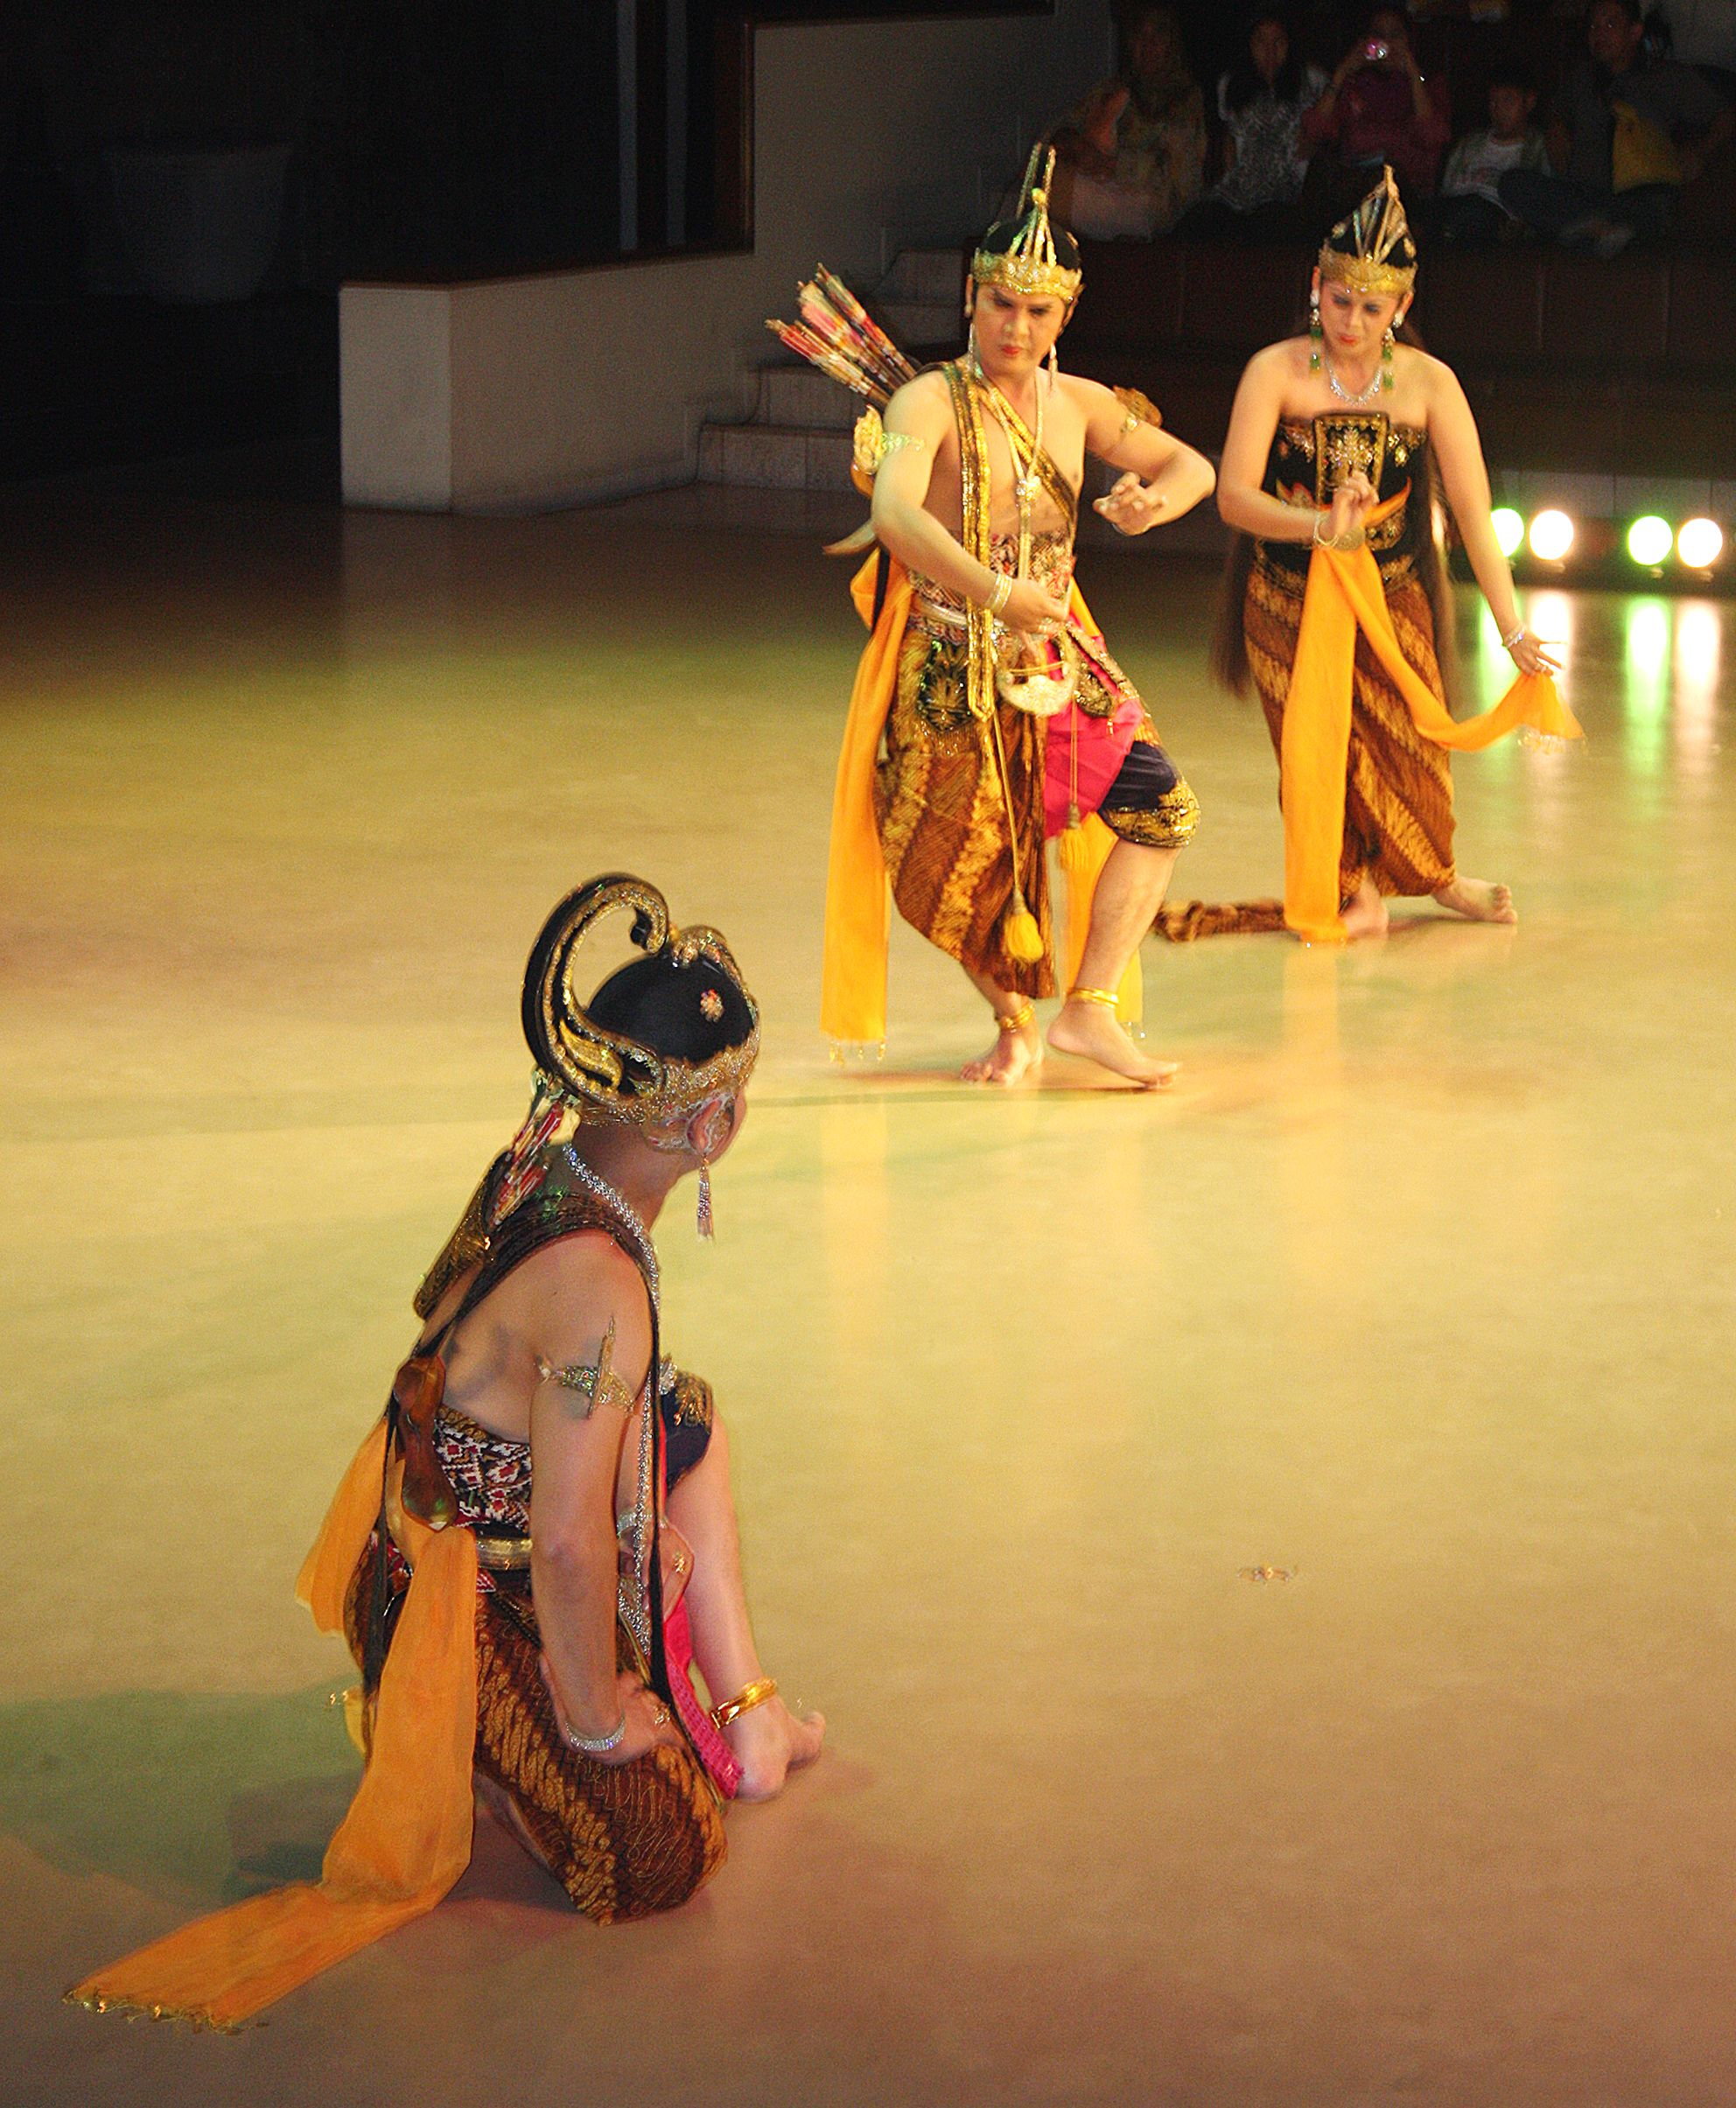 Google Image Result For Https Upload Wikimedia Org Wikipedia Commons 6 60 Ramayana Java Jpg Dance Pictures Dance Culture